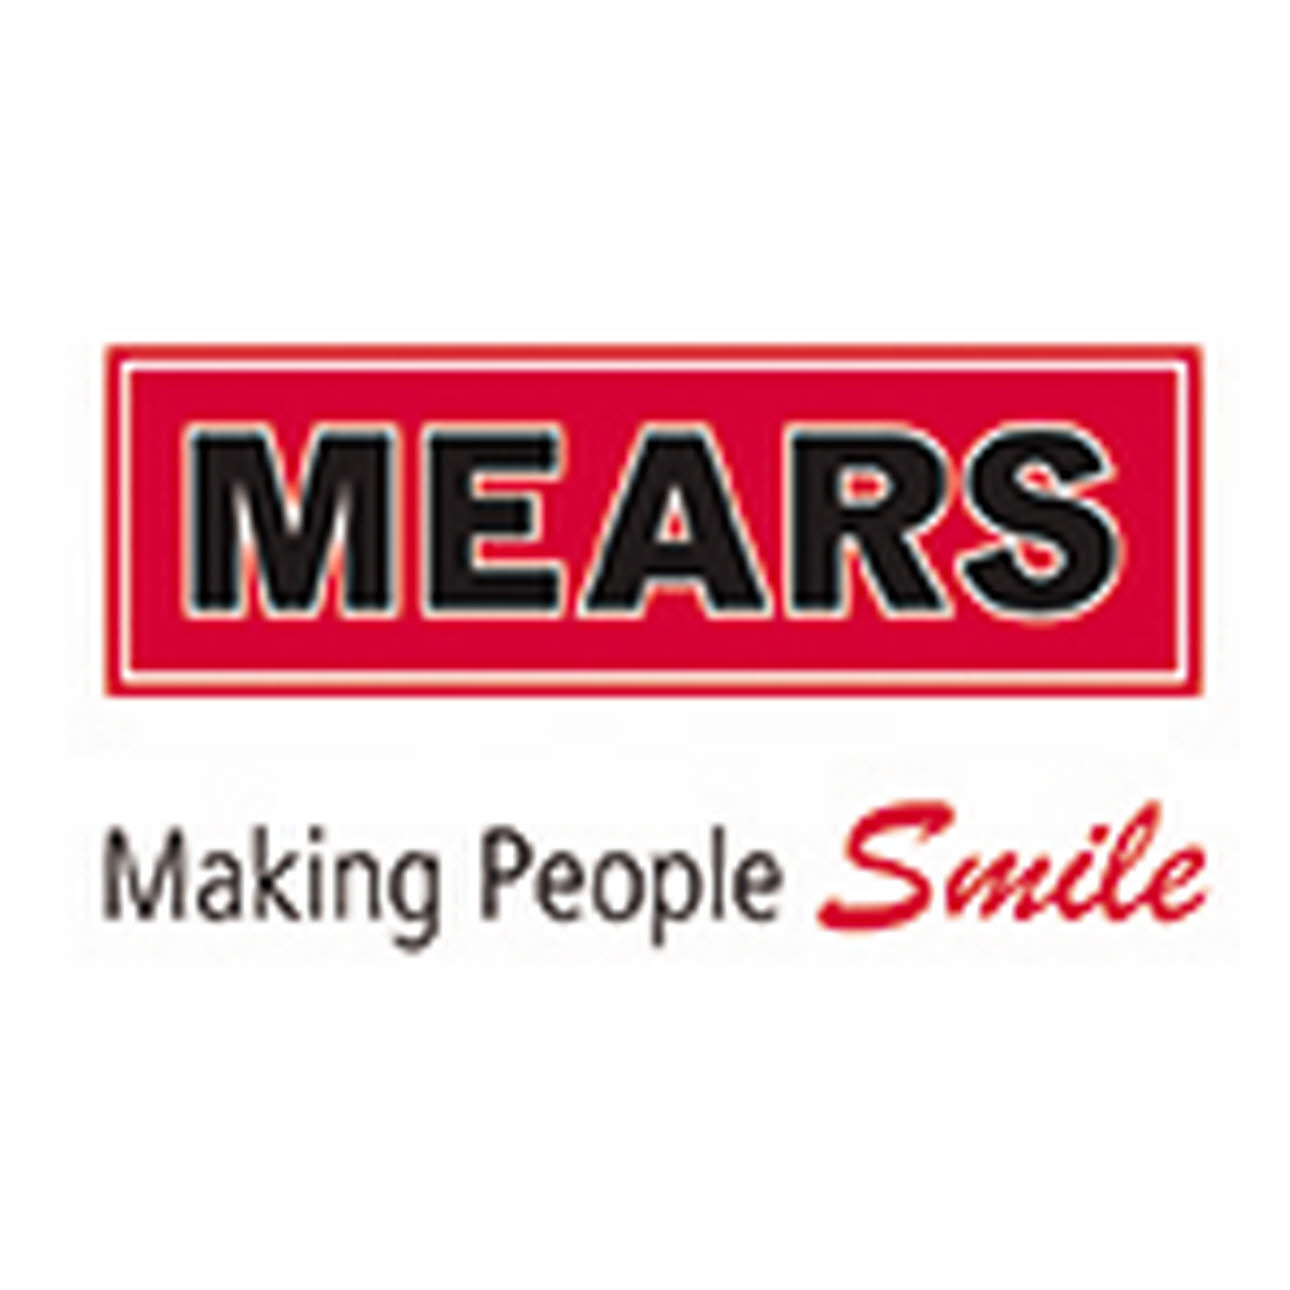 Mears Logo, Making People Smile, red, white and black